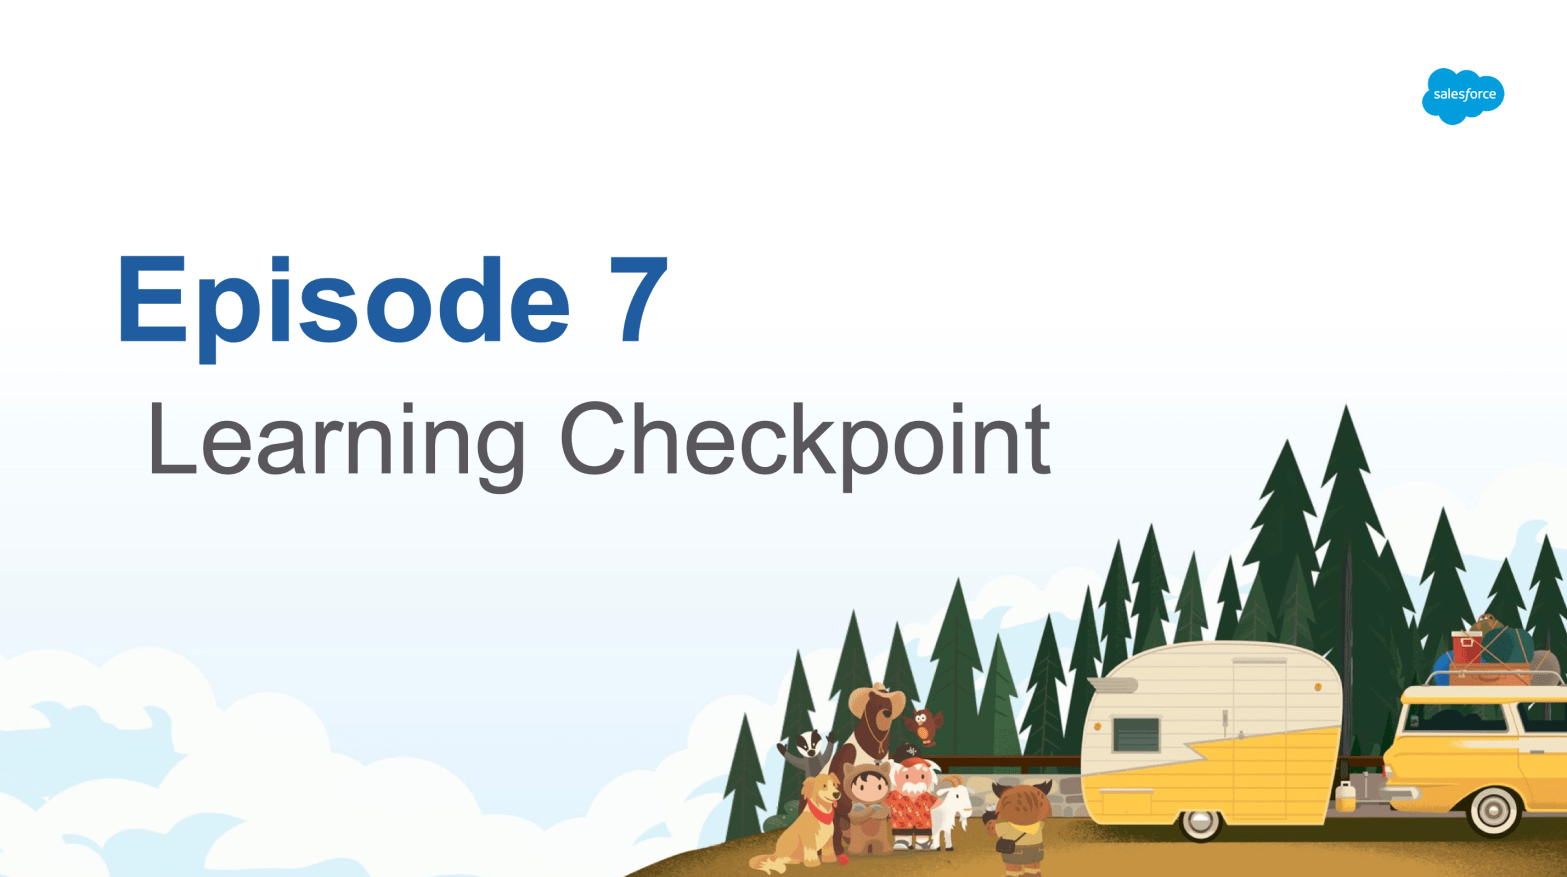 Episode 7 - Learning Checkpoint